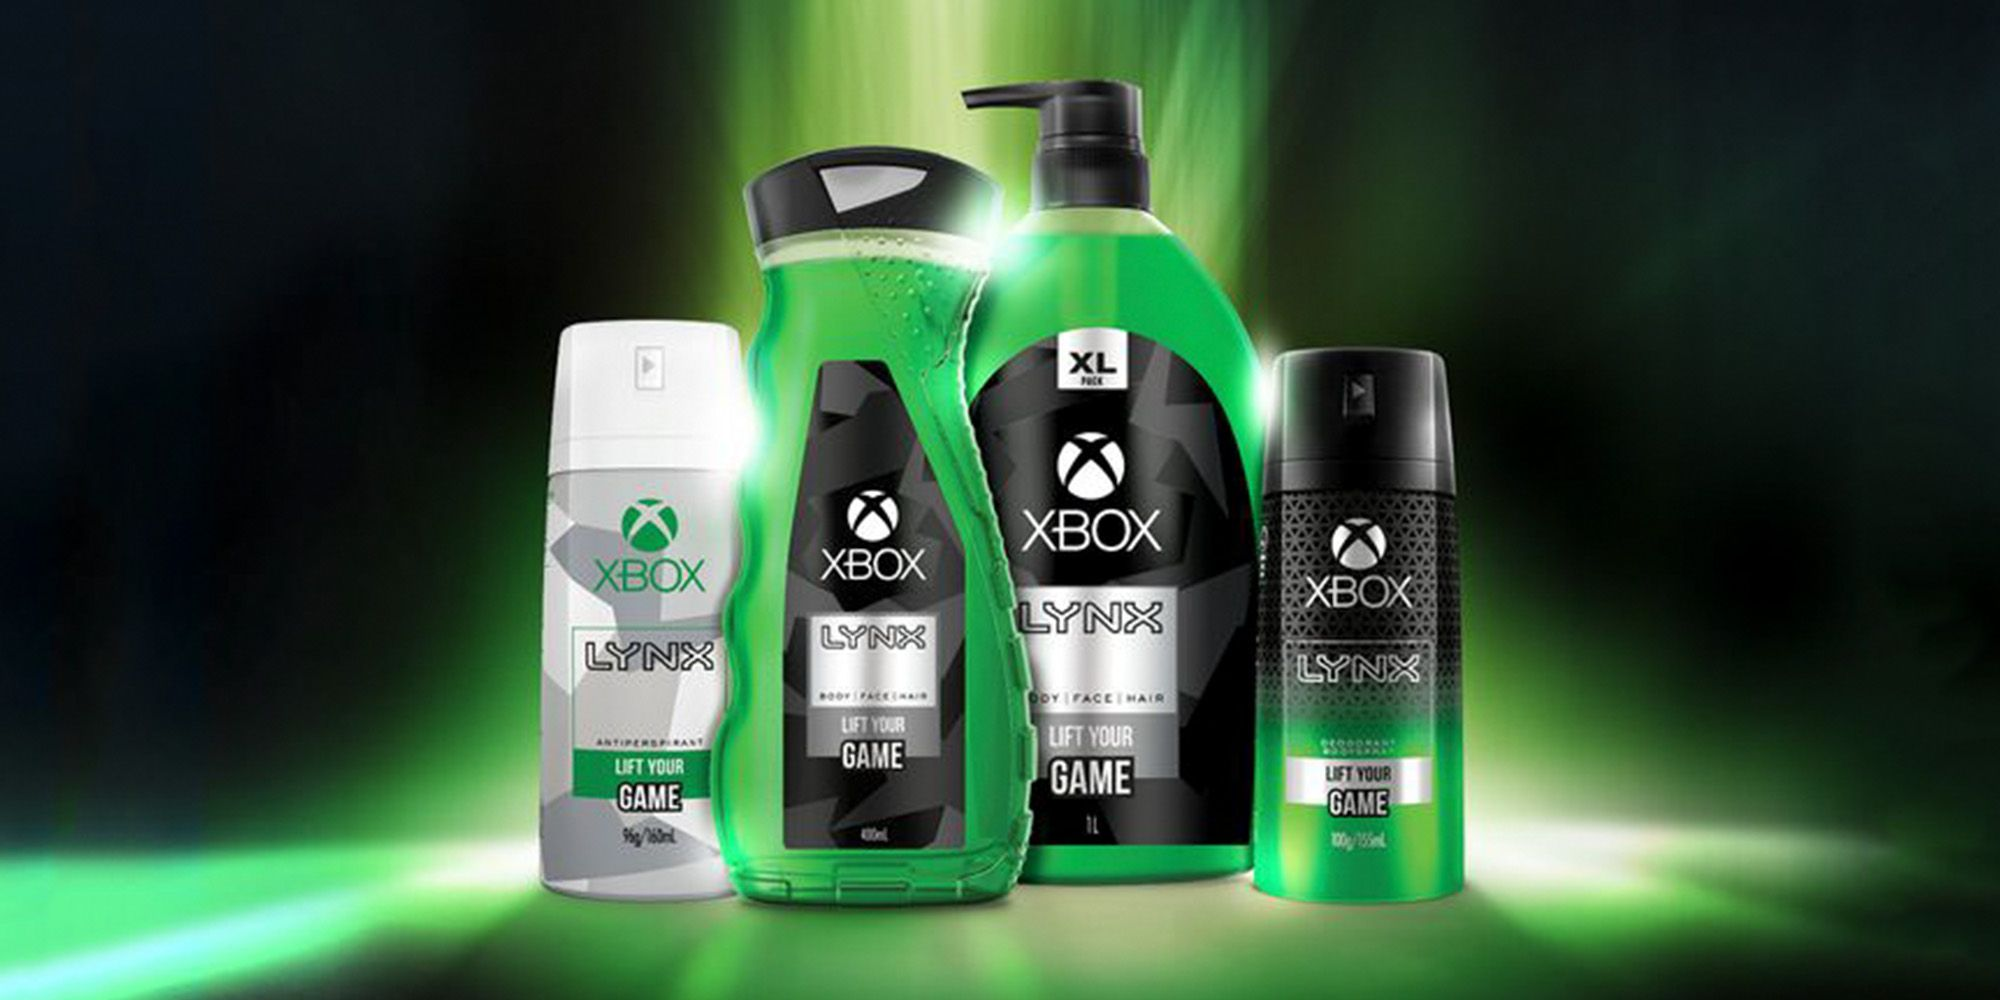 Xbox Axe Body Spray for Gamers - Microsoft and Lynx Release